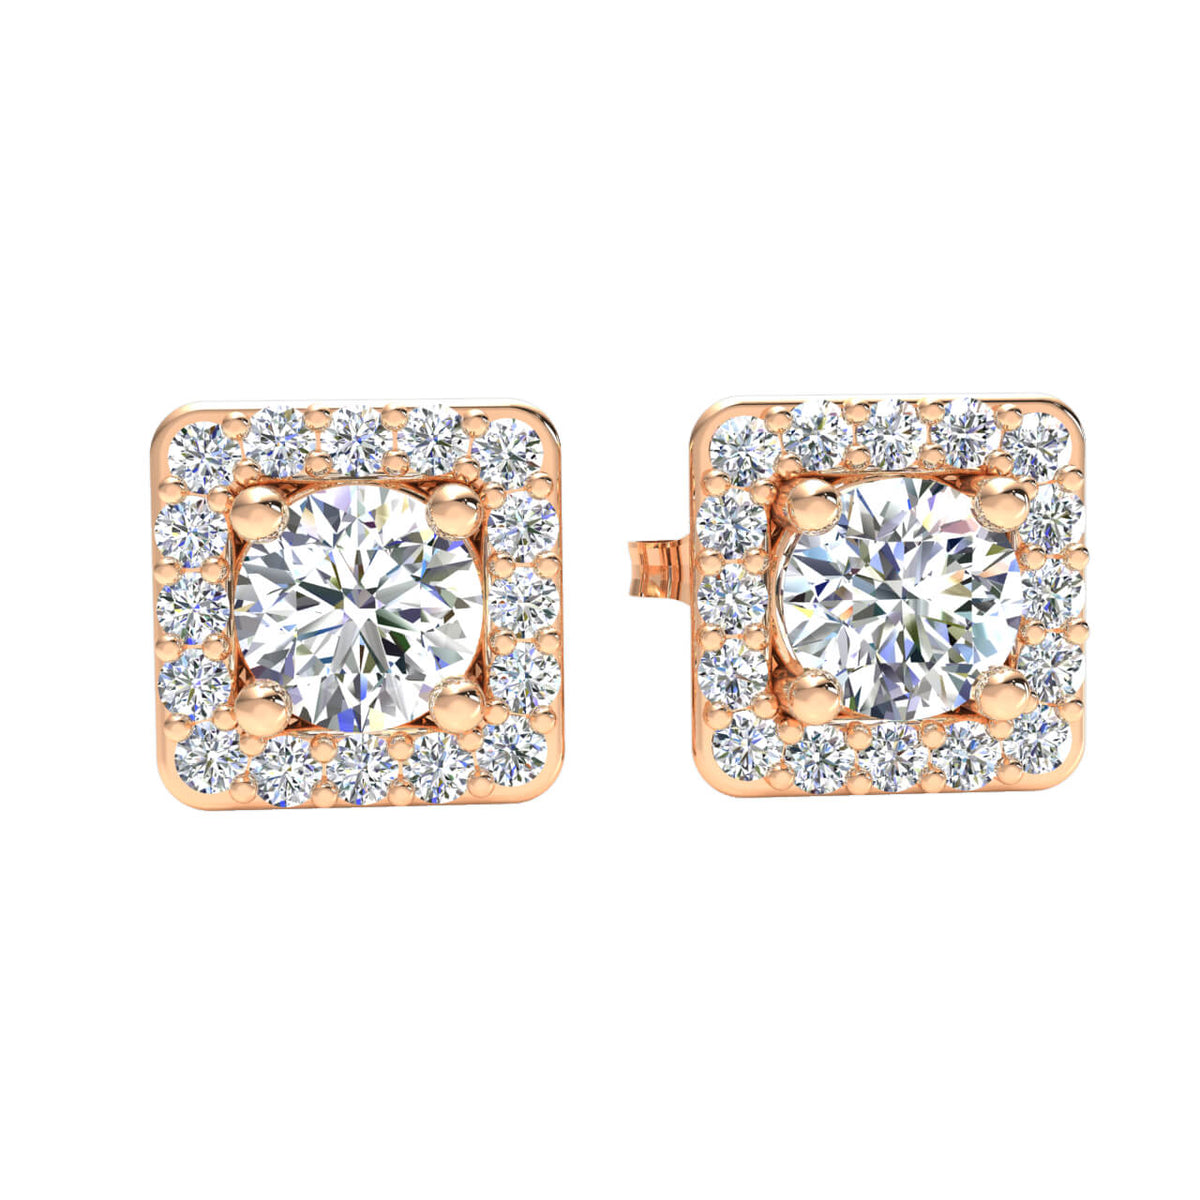 0.66 Ct Square Halo Round GH SI2 Diamond Stud Earrings 14k Gold